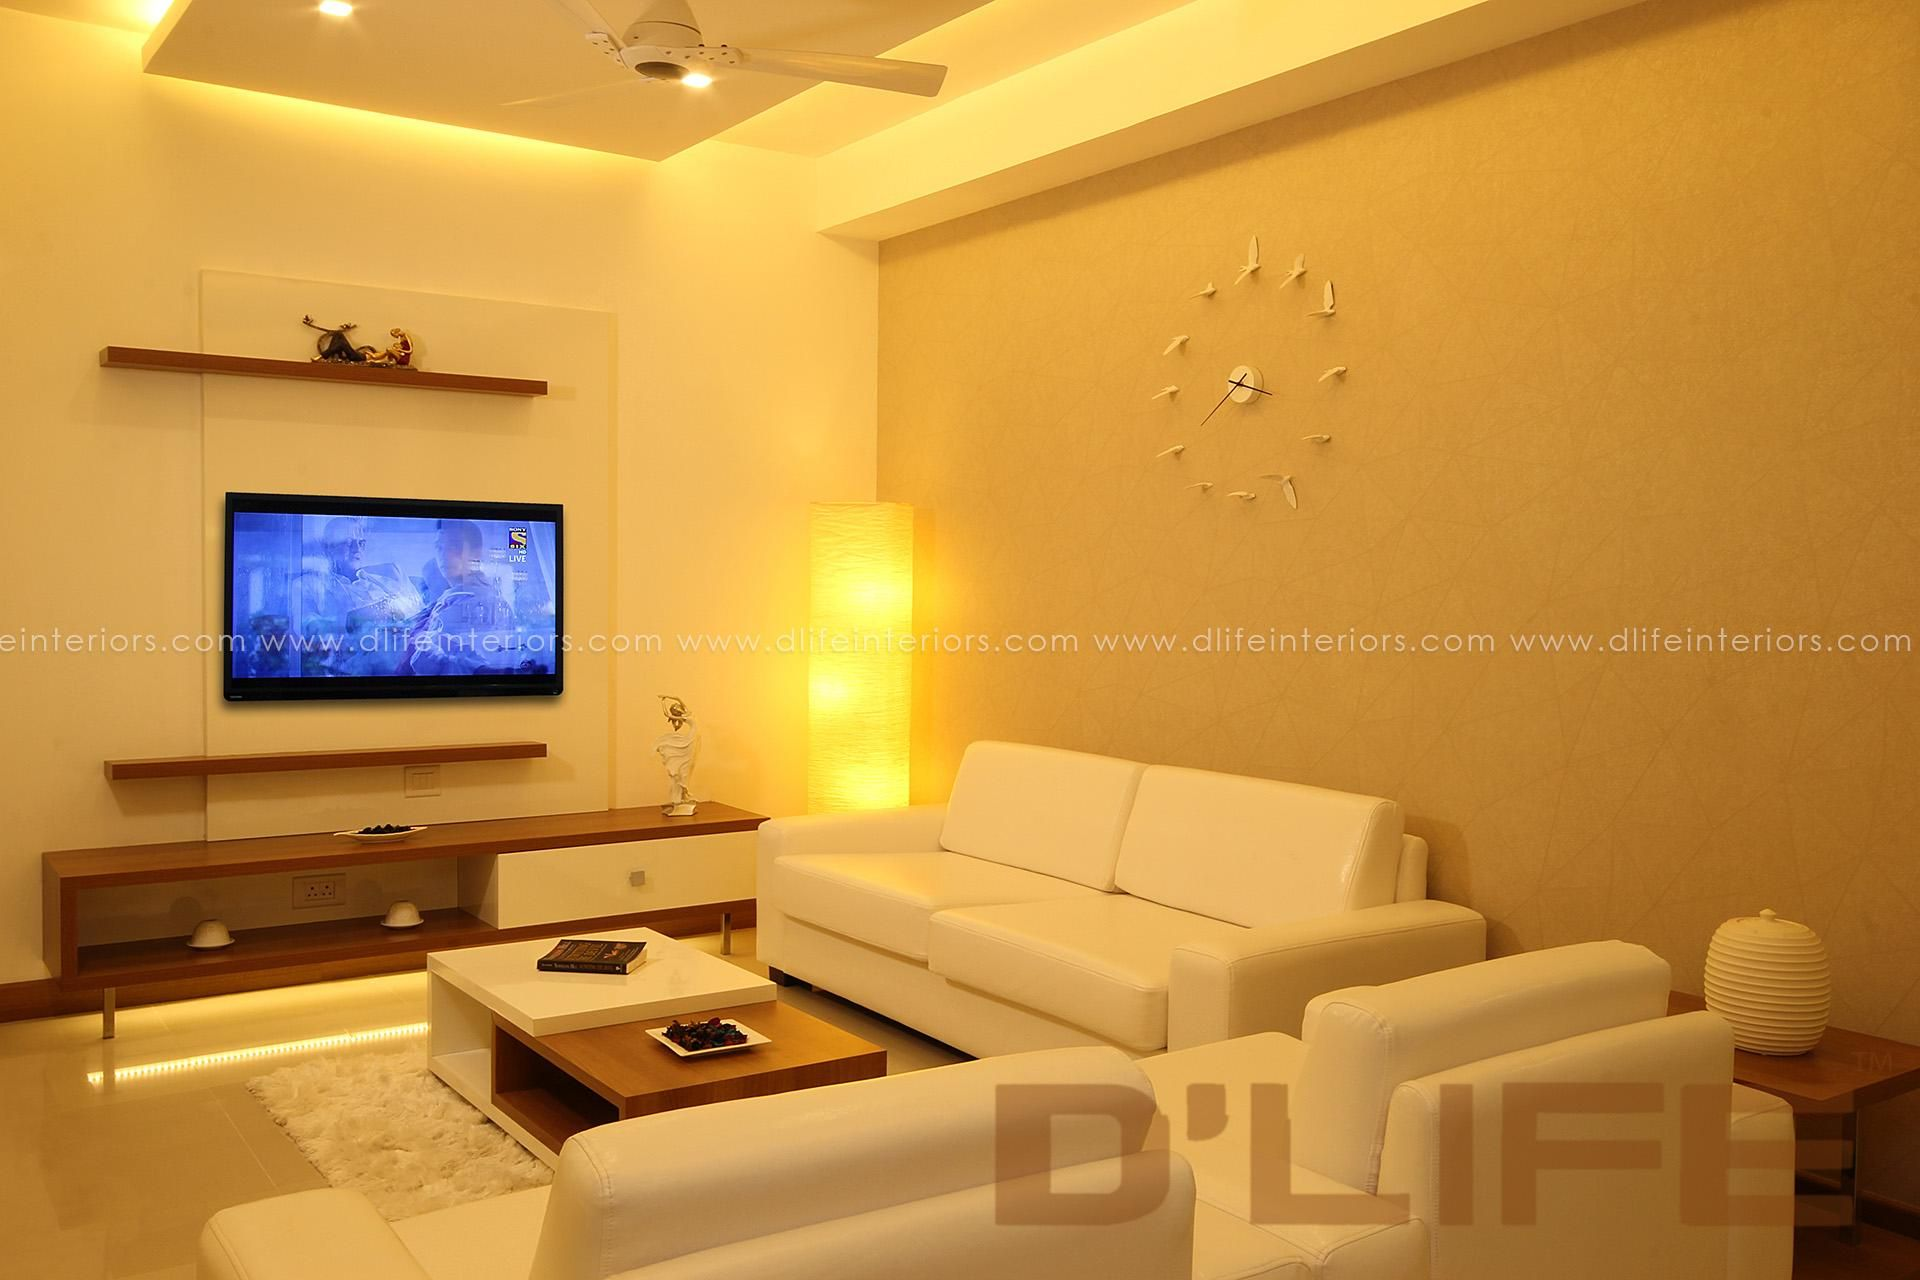 Celebrity Home Interiors At Cochin Designed, Executed By Du0027LIFE